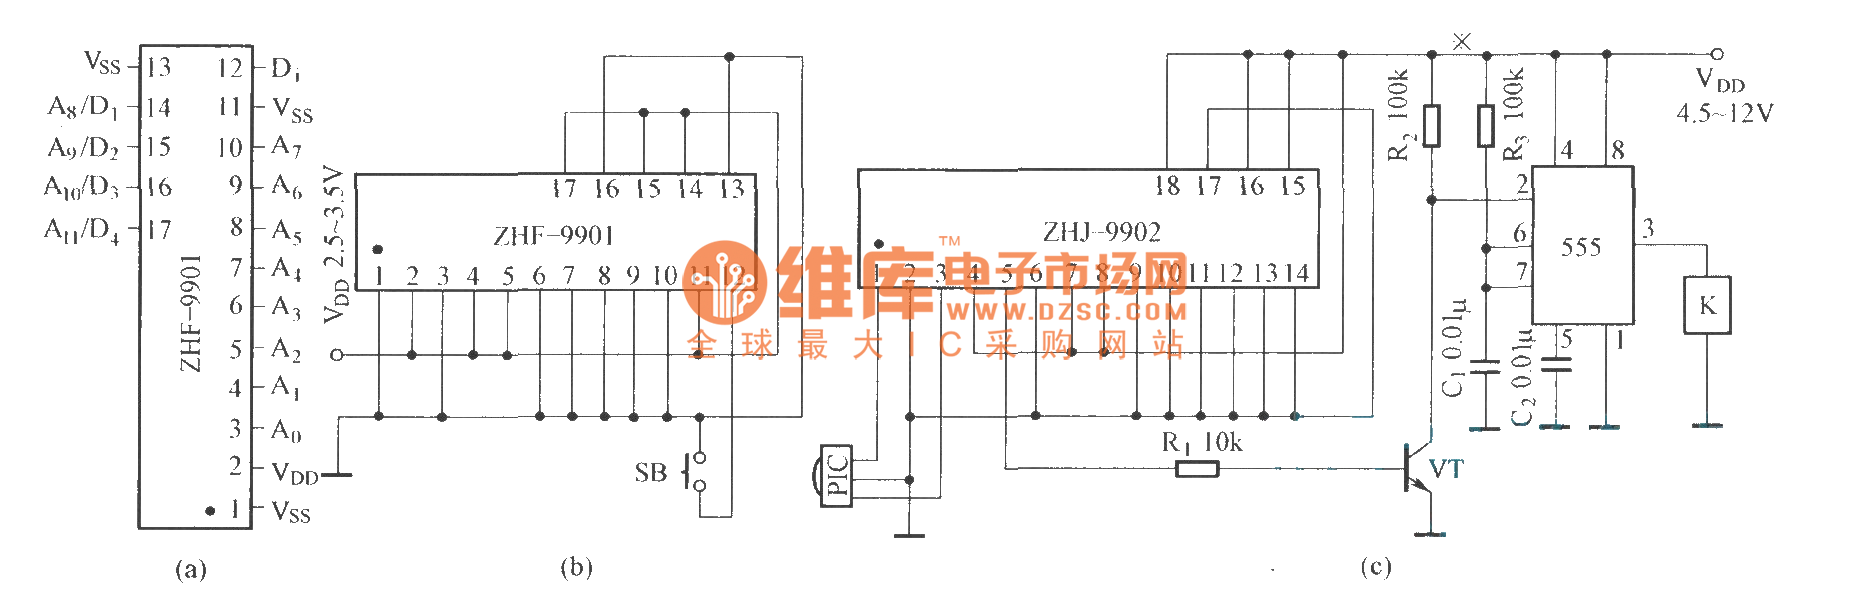 The Circuit Diagram Composed Of Zhf 9901 And Zhj 9902 Index 5 555 Seekiccom